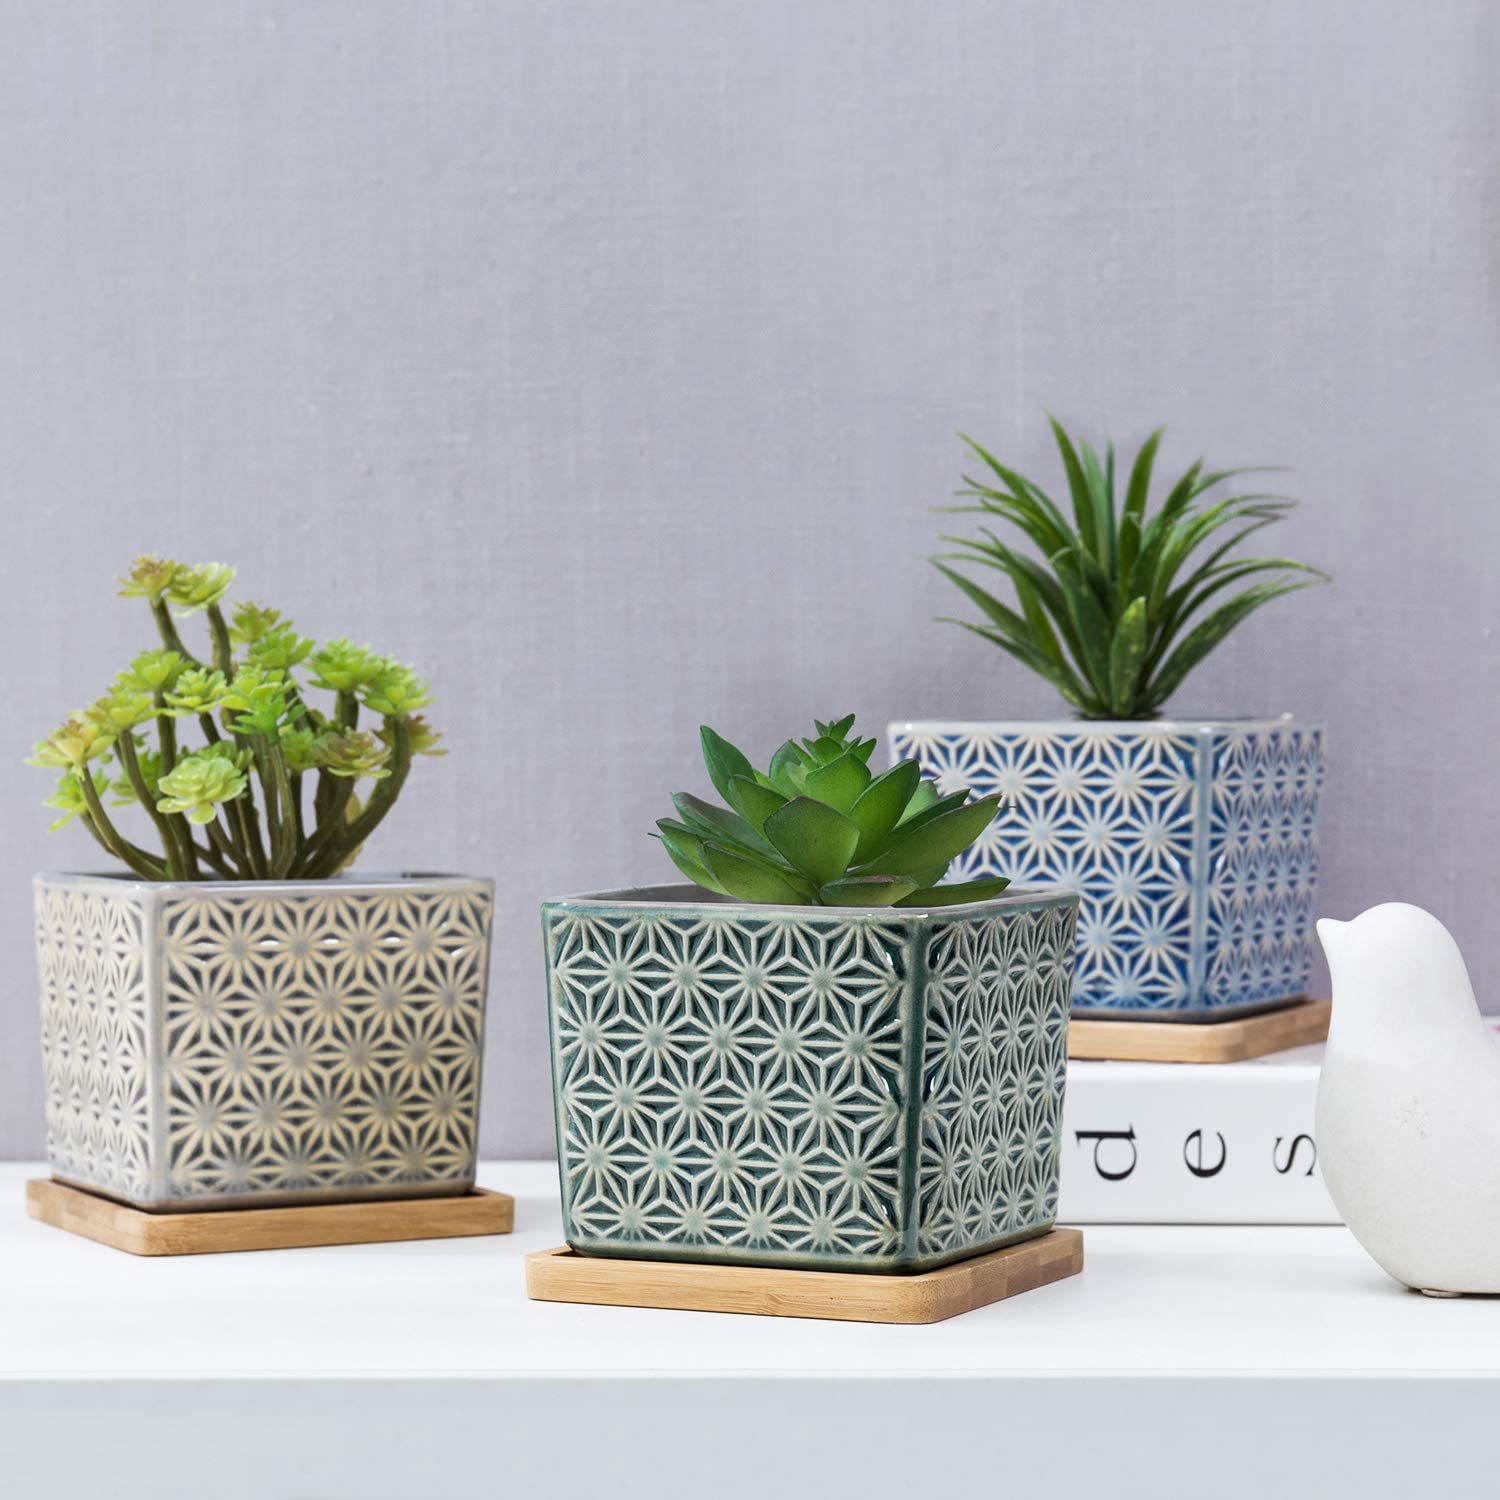 MyGift Multicolored Geometric Design Ceramic Square Planters with Bamboo Trays, Set of 3